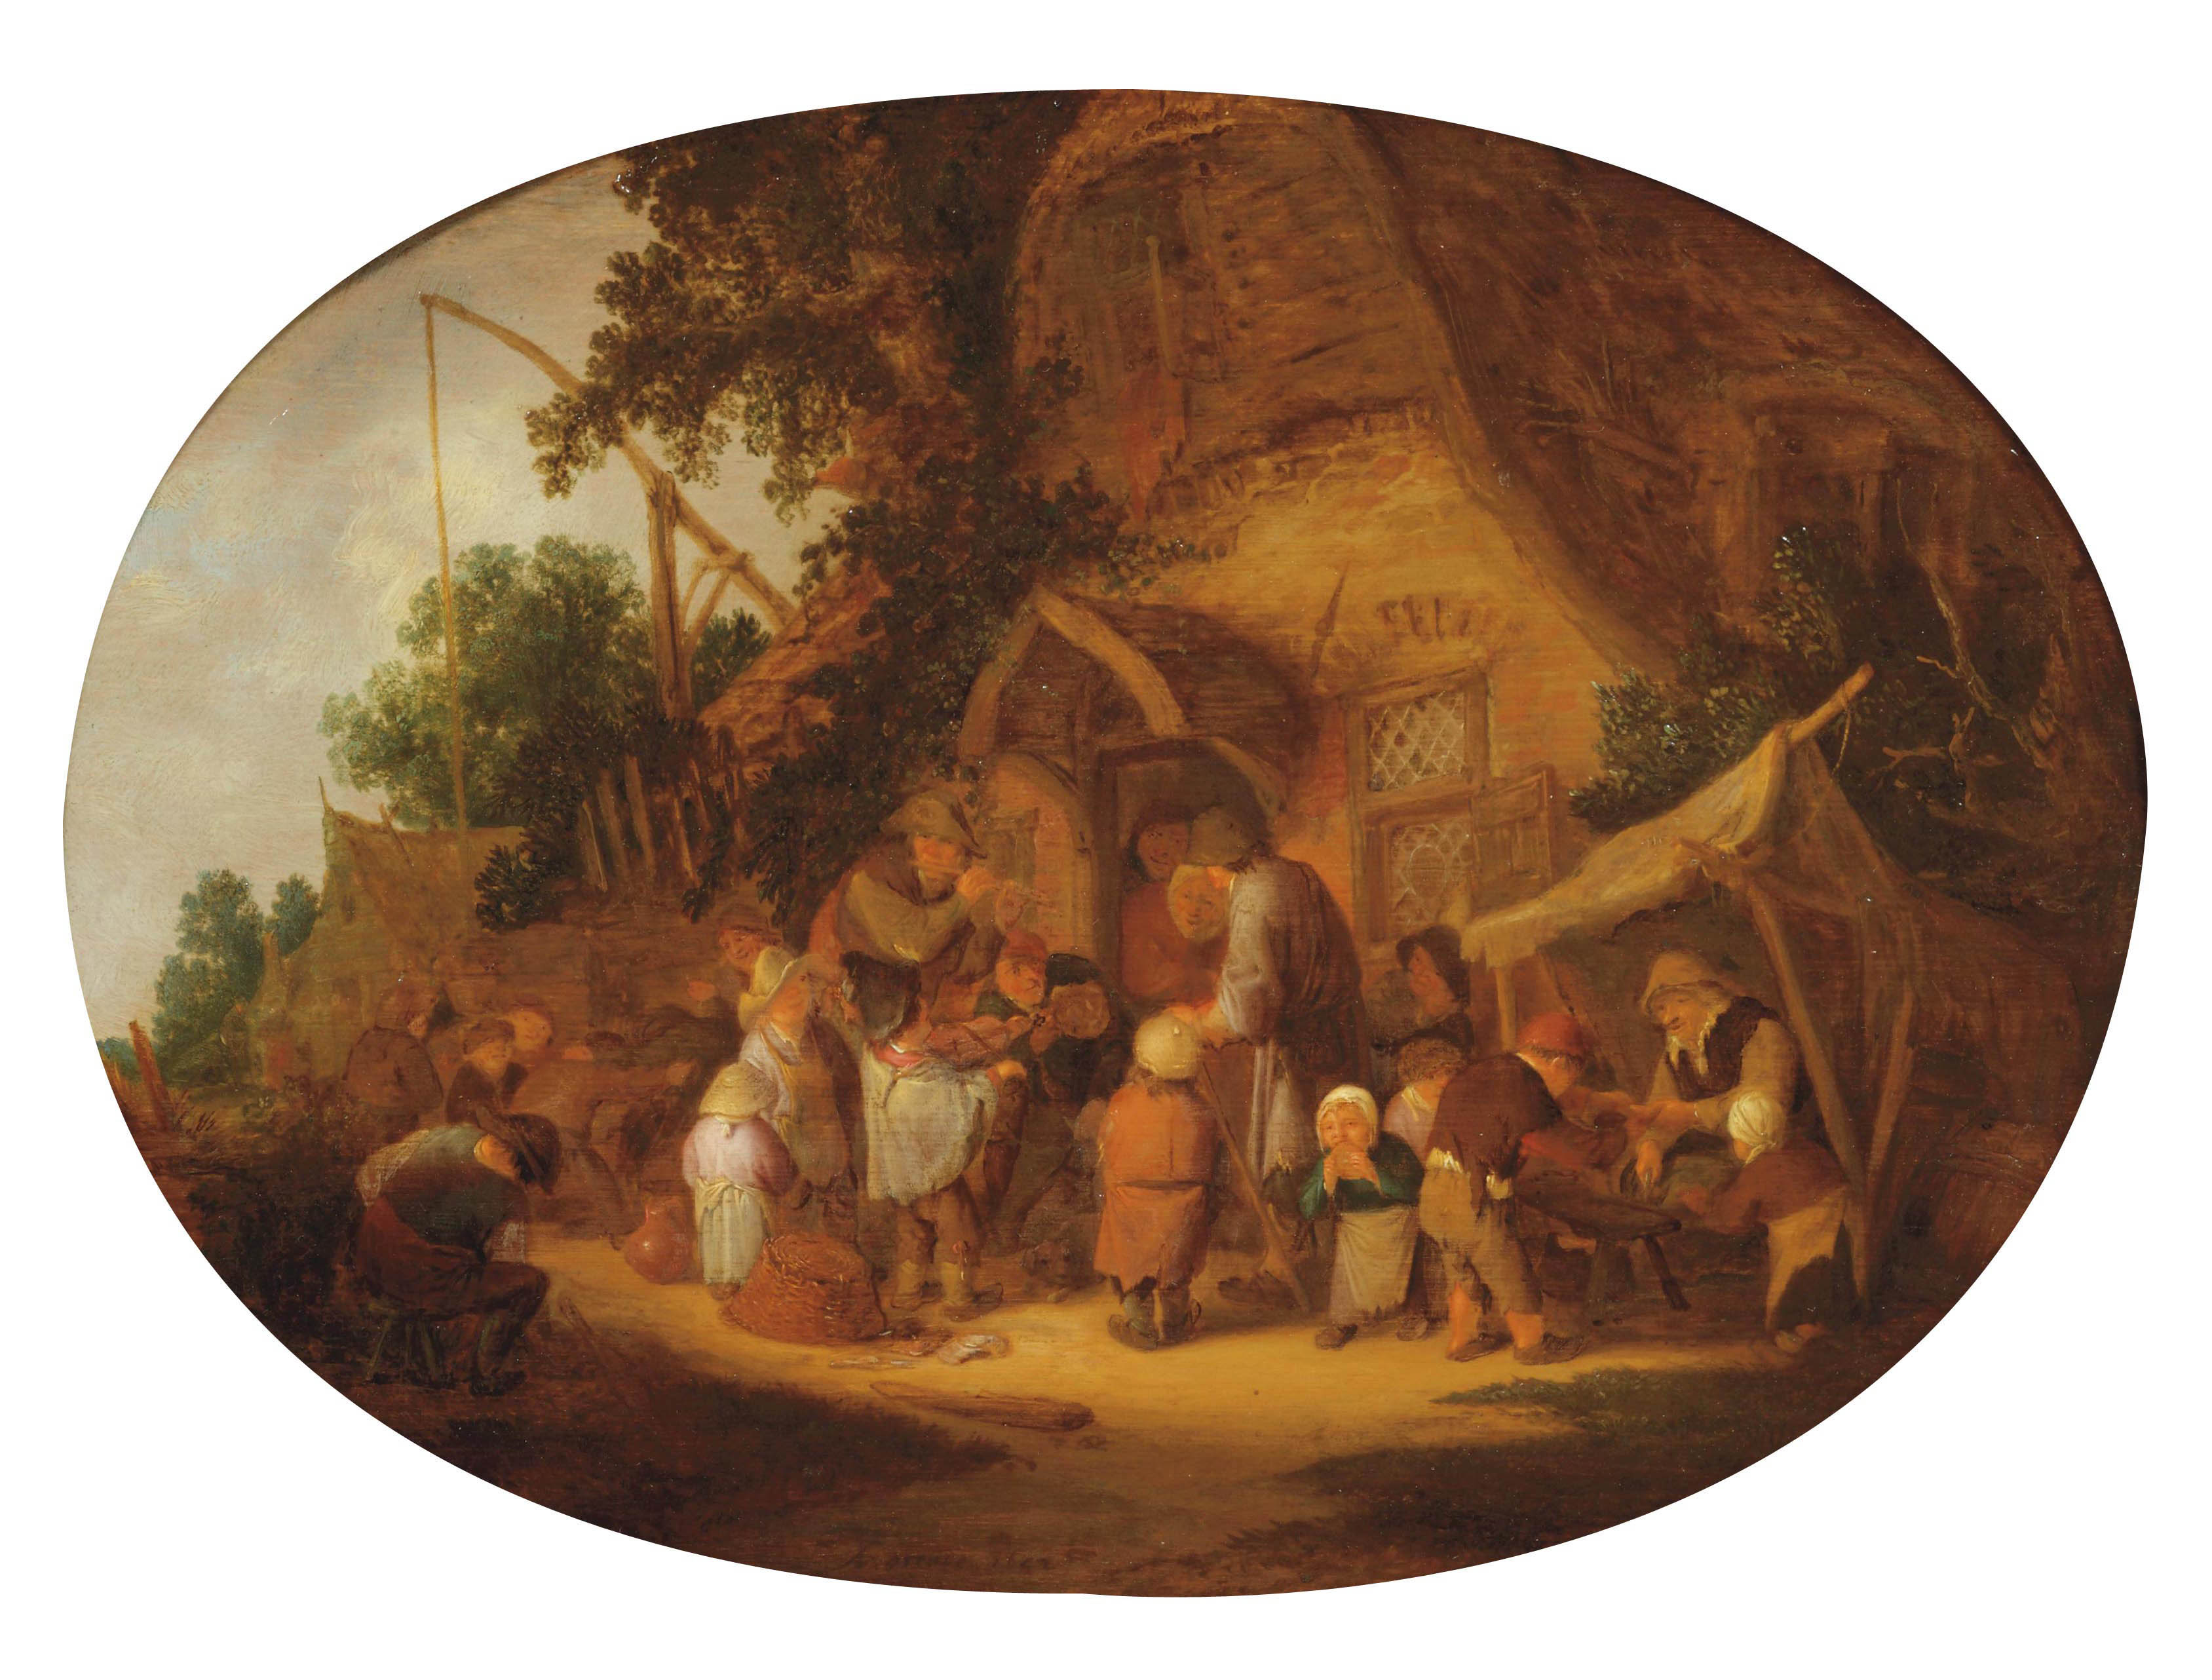 Peasants making music at a village feast